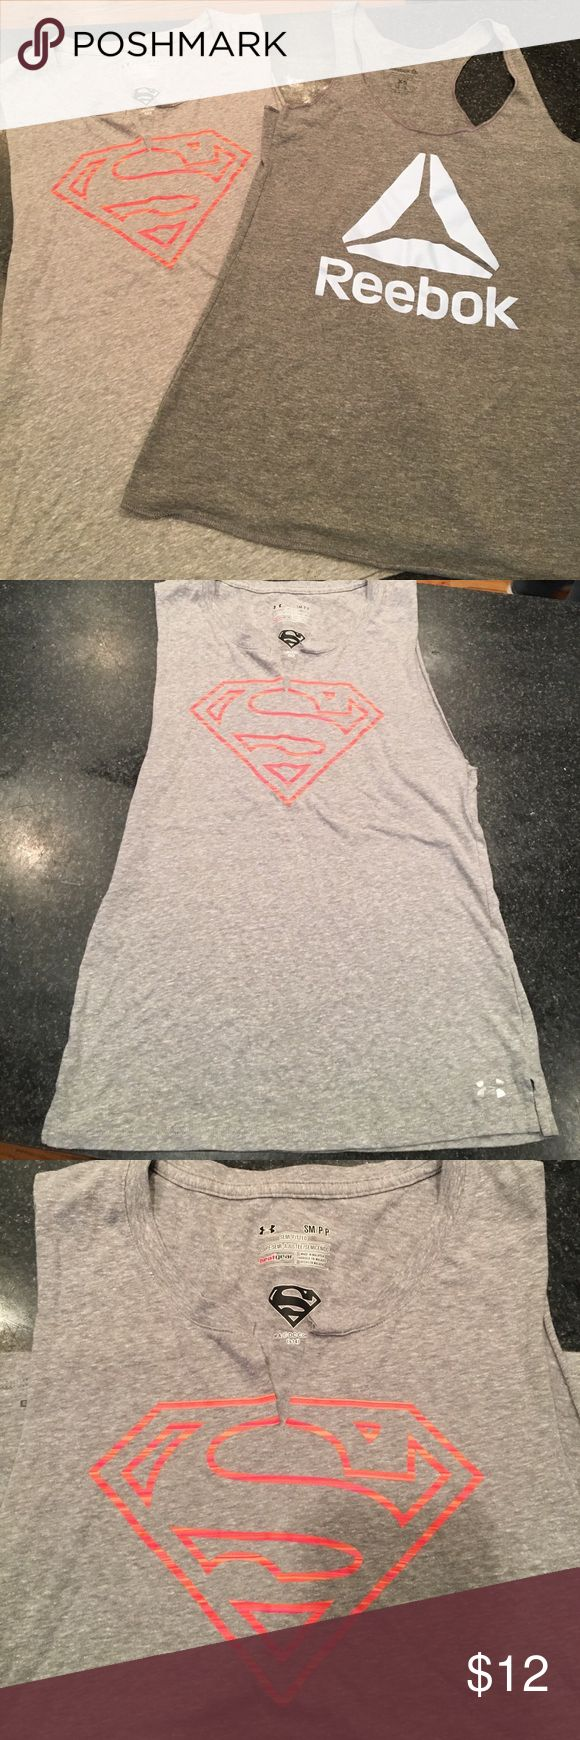 Reebok + Under Armour Tank Bundle! 2 for $10!!!! Reebok and Under Armour Tank Bundle!! 2 for $10!!!! Under Armour Tank size Small. Reebok Tank size XS. BOTH FIT SIZES 2-6 Under Armour Tops Muscle Tees